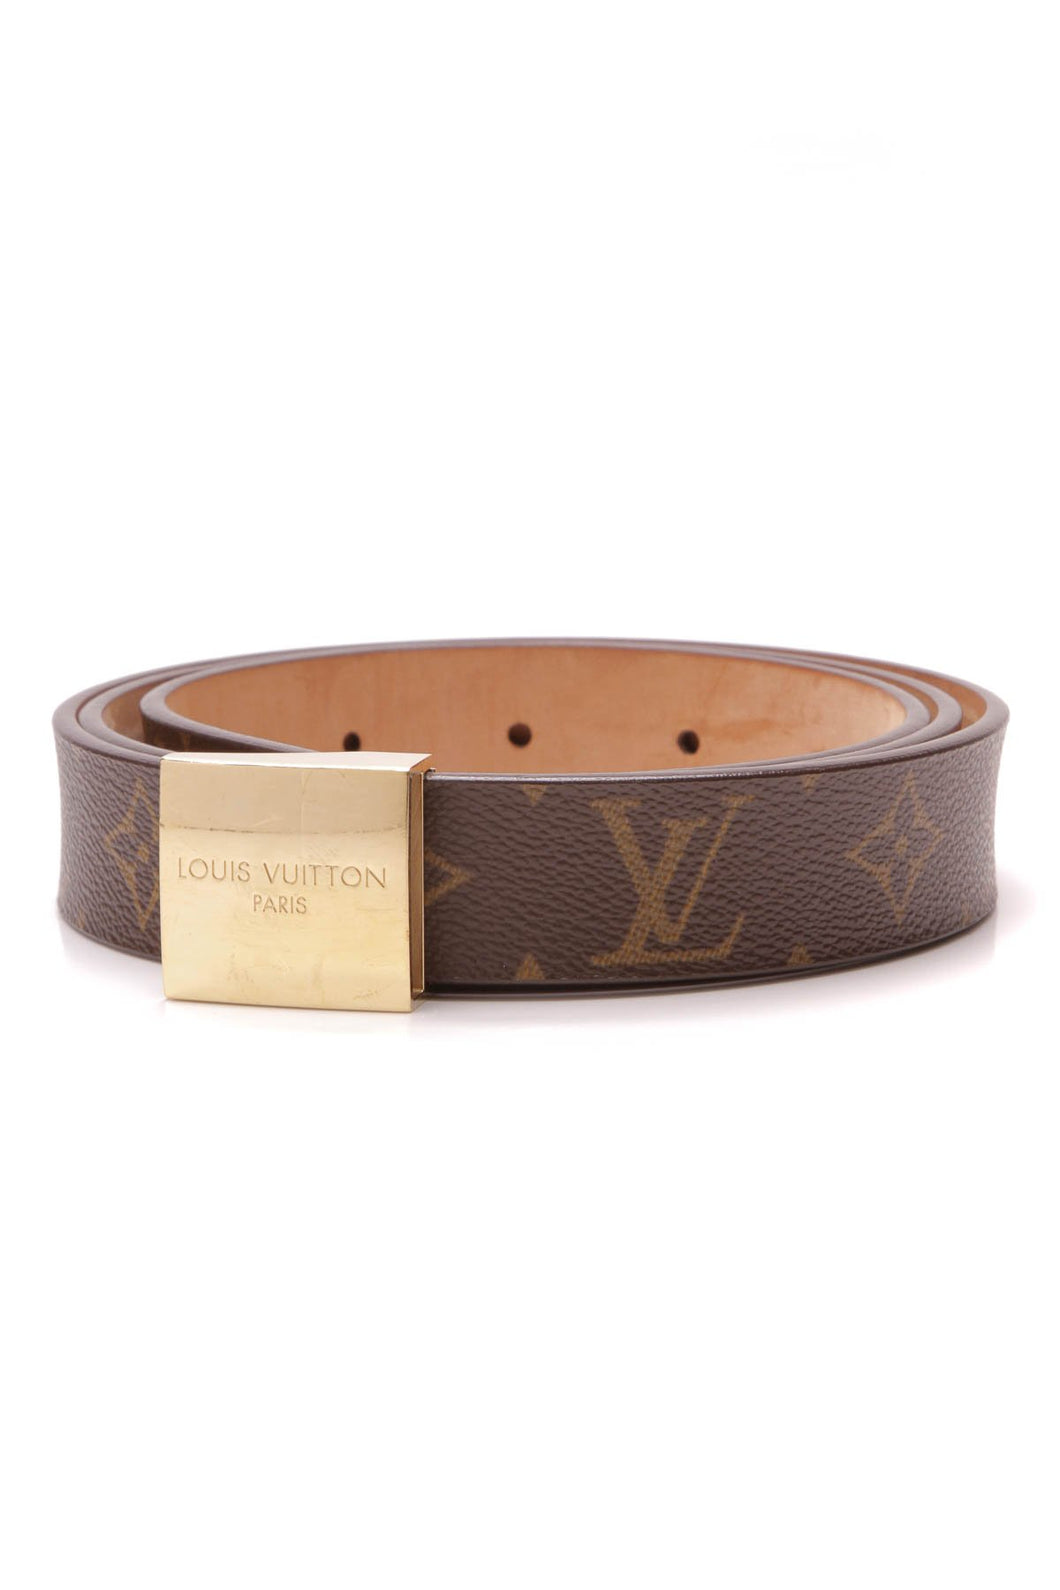 Louis Vuitton Ceinture Carree Belt - Monogram Size 44